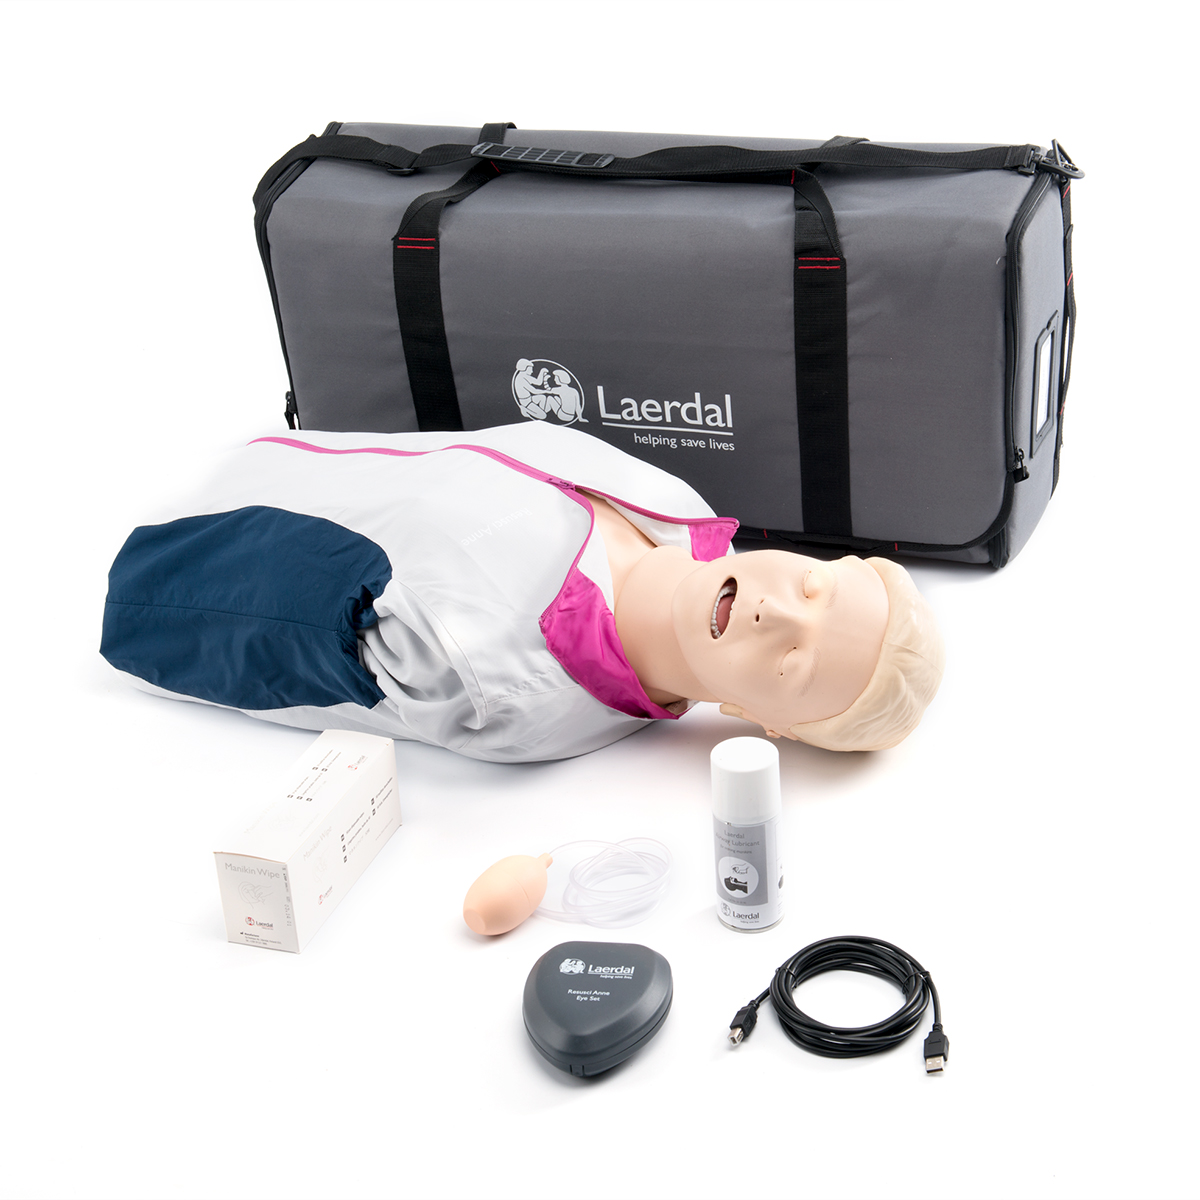 Laerdal Resusci® Anne QCPR AIIrway Head First Aid Torso with Carry Bag and Mat